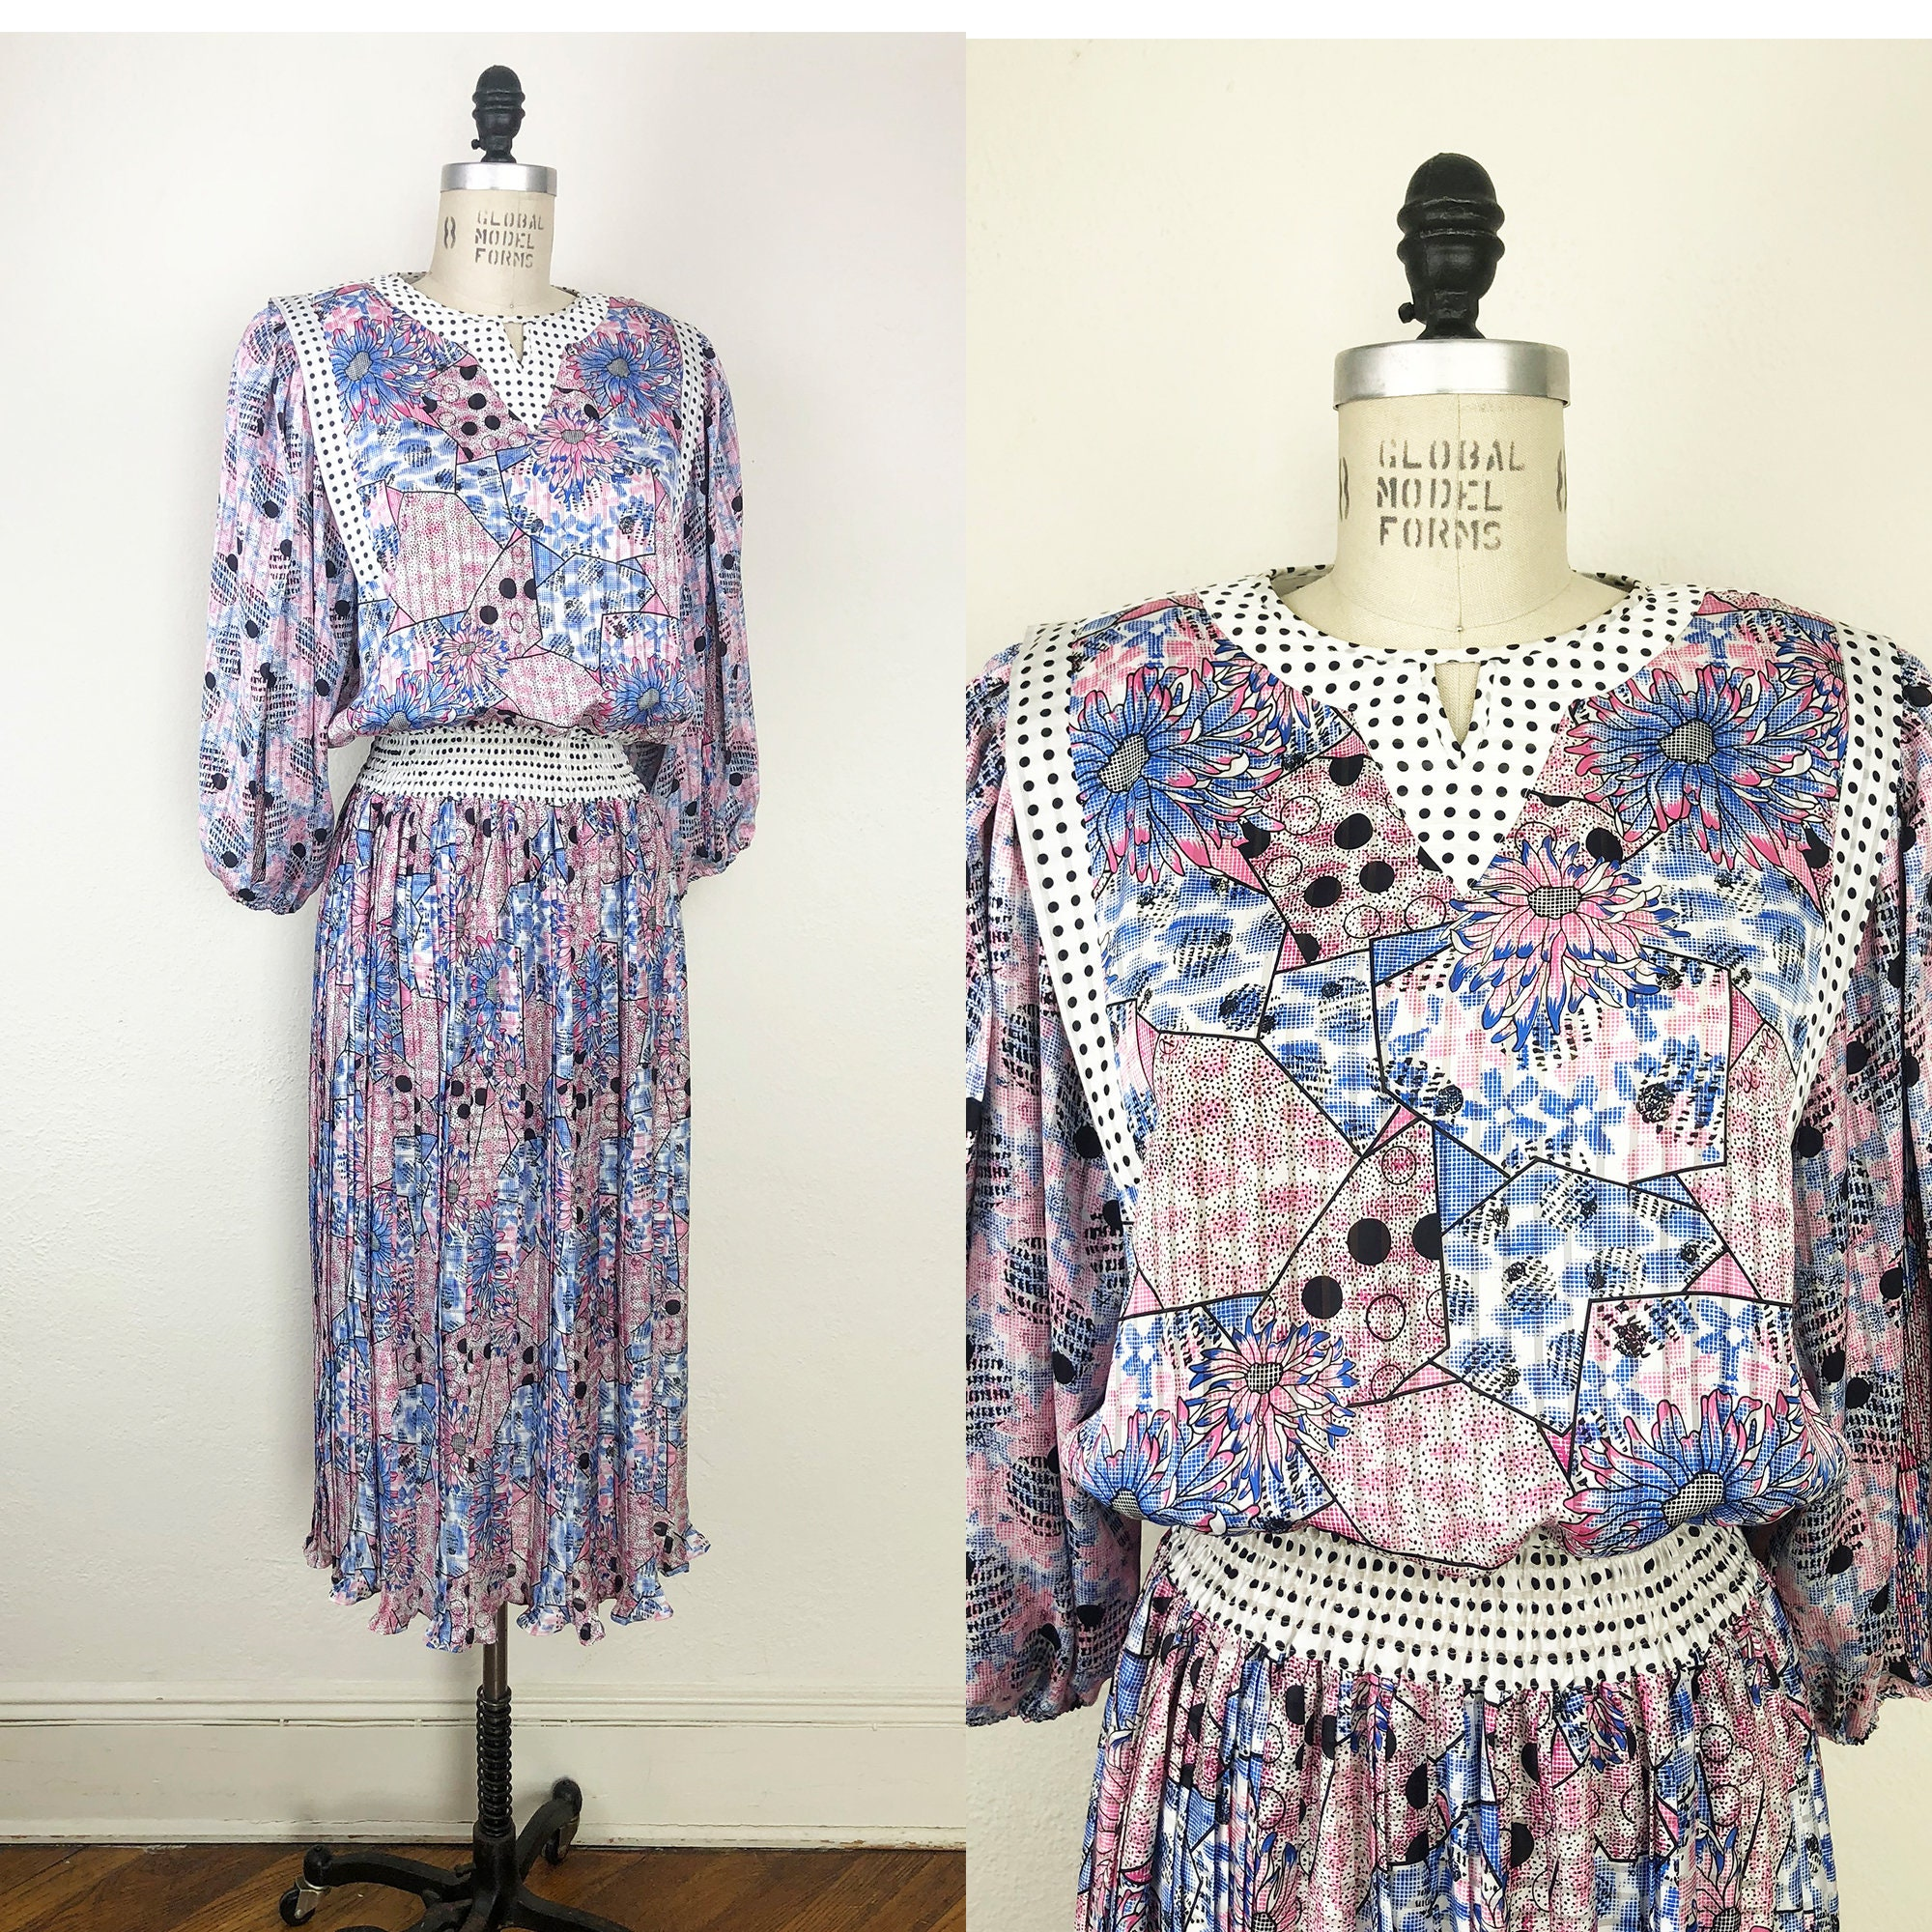 80s Dresses | Casual to Party Dresses Vintage 1980S Pop Art Patchwork Polka Dot Ruffle Dress By Diane Freis Graphic M $78.00 AT vintagedancer.com